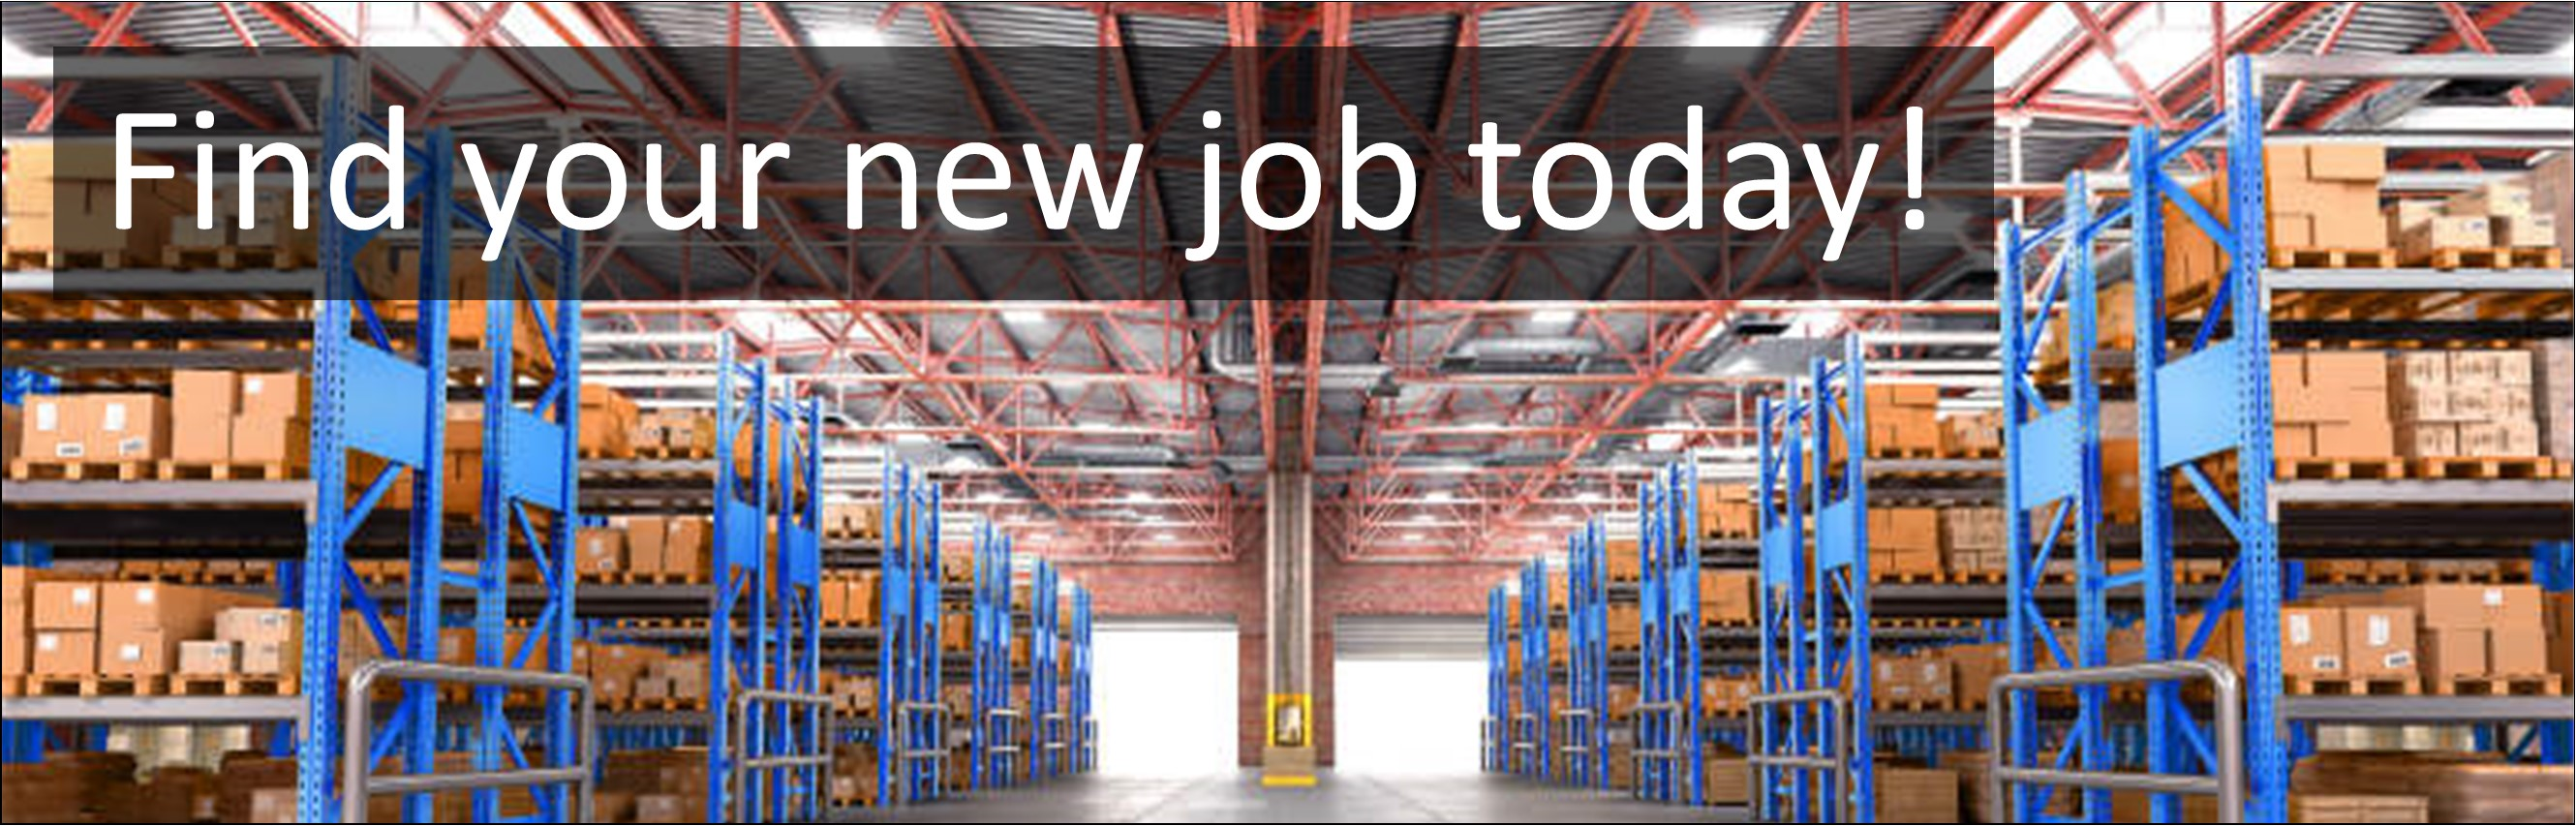 Warehouse & Distribution Jobs. Seed Processing Production Operator and Plant Maintenance Engineer Jobs, Careers & Vacancies in Riby, Lincolnshire, North East England. Advertised by AWD online – Multi-Job Board Advertising and CV Sourcing Recruitment Services